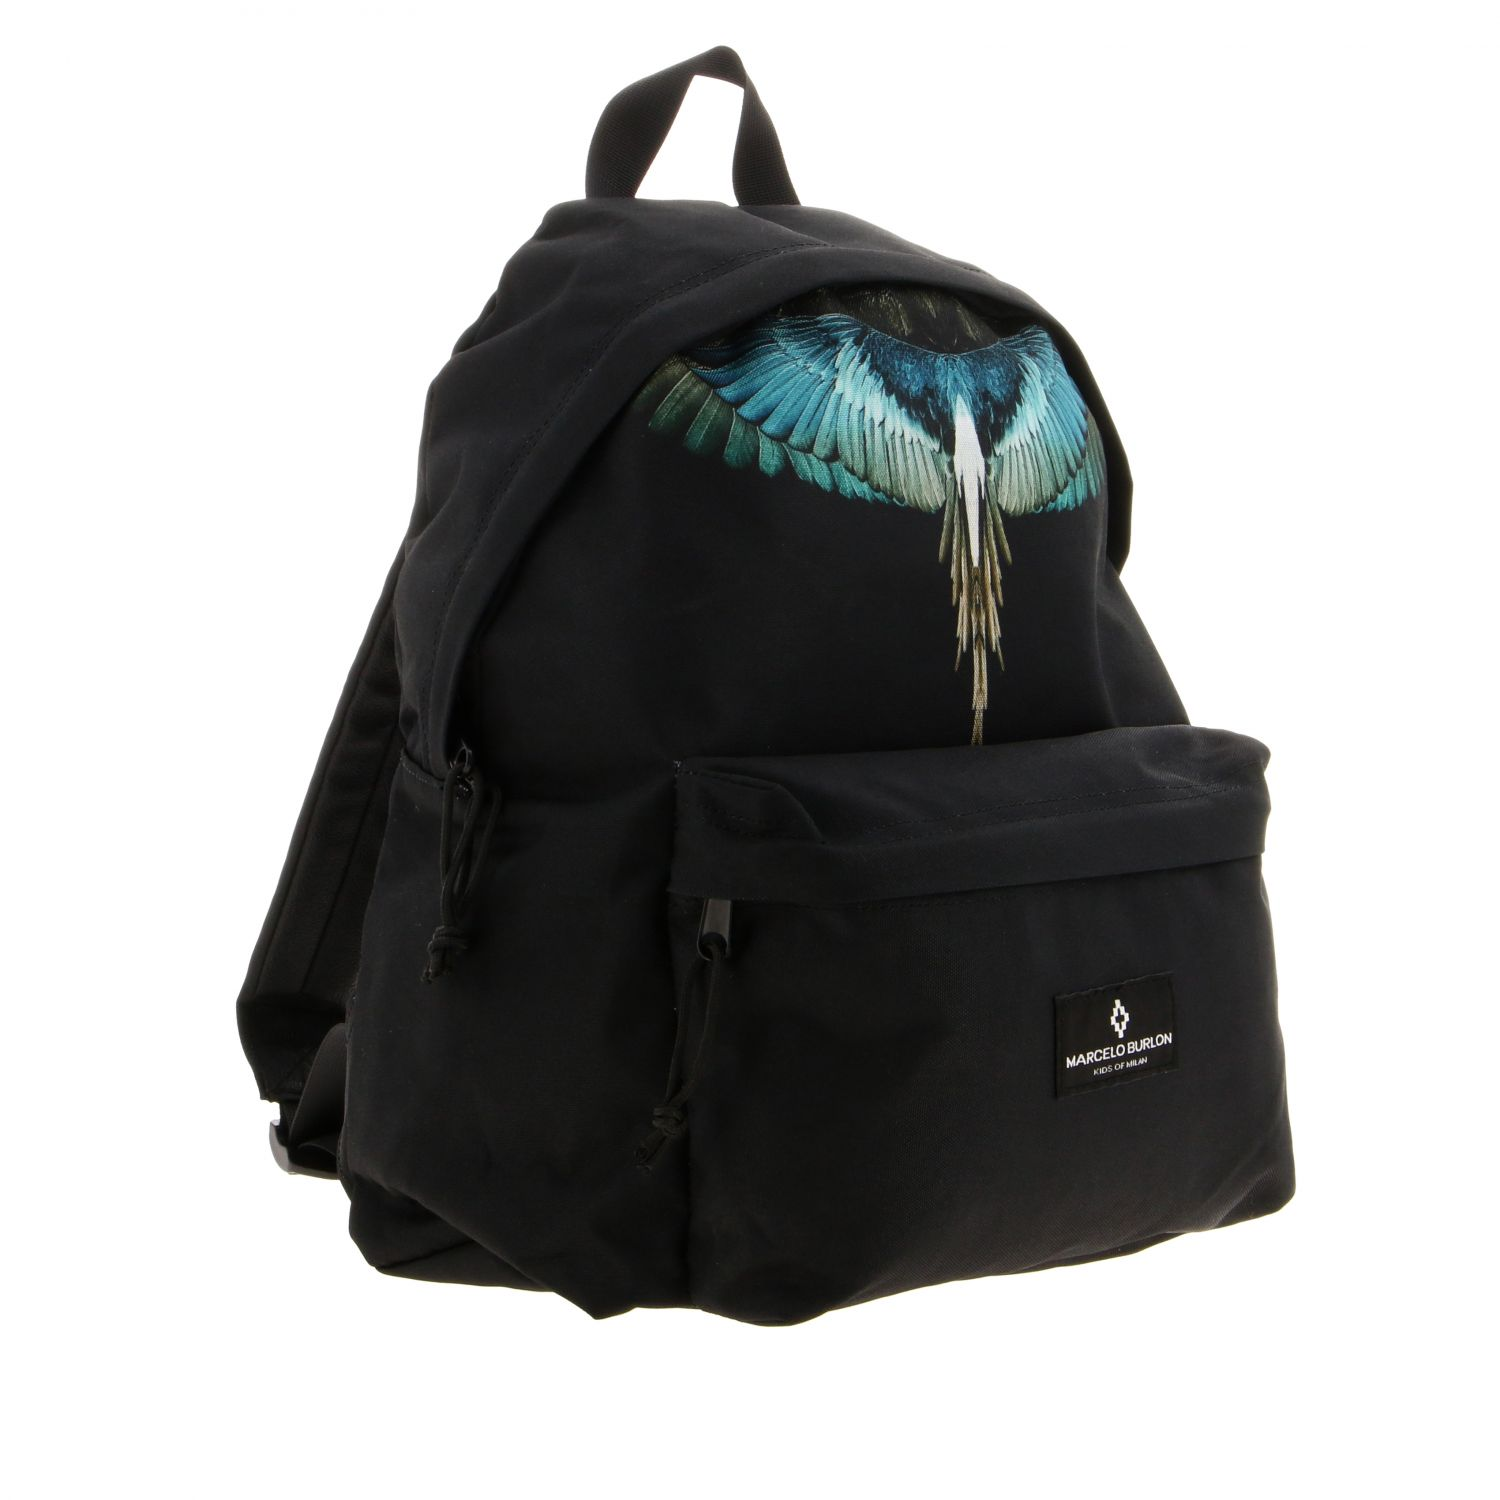 Duffel bag kids Marcelo Burlon black 2